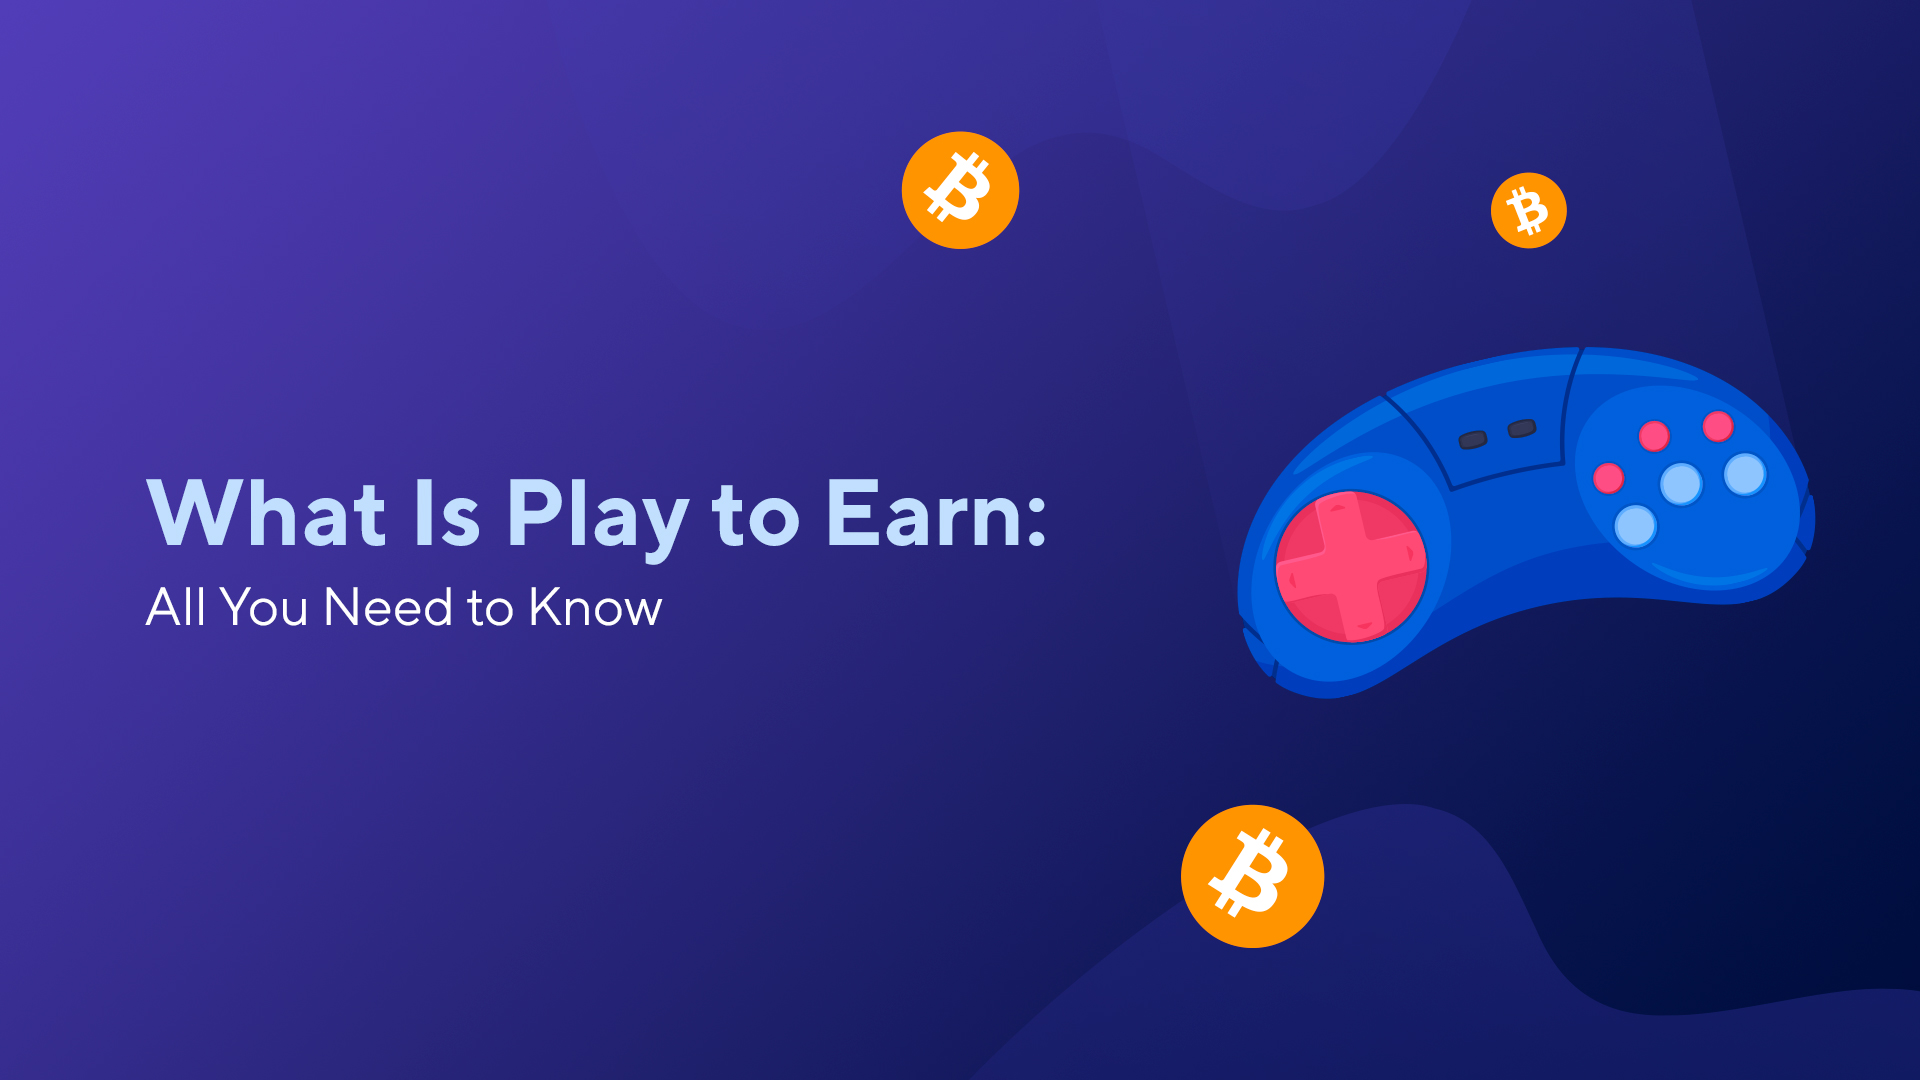 What Is Play to Earn: Key Things to Know